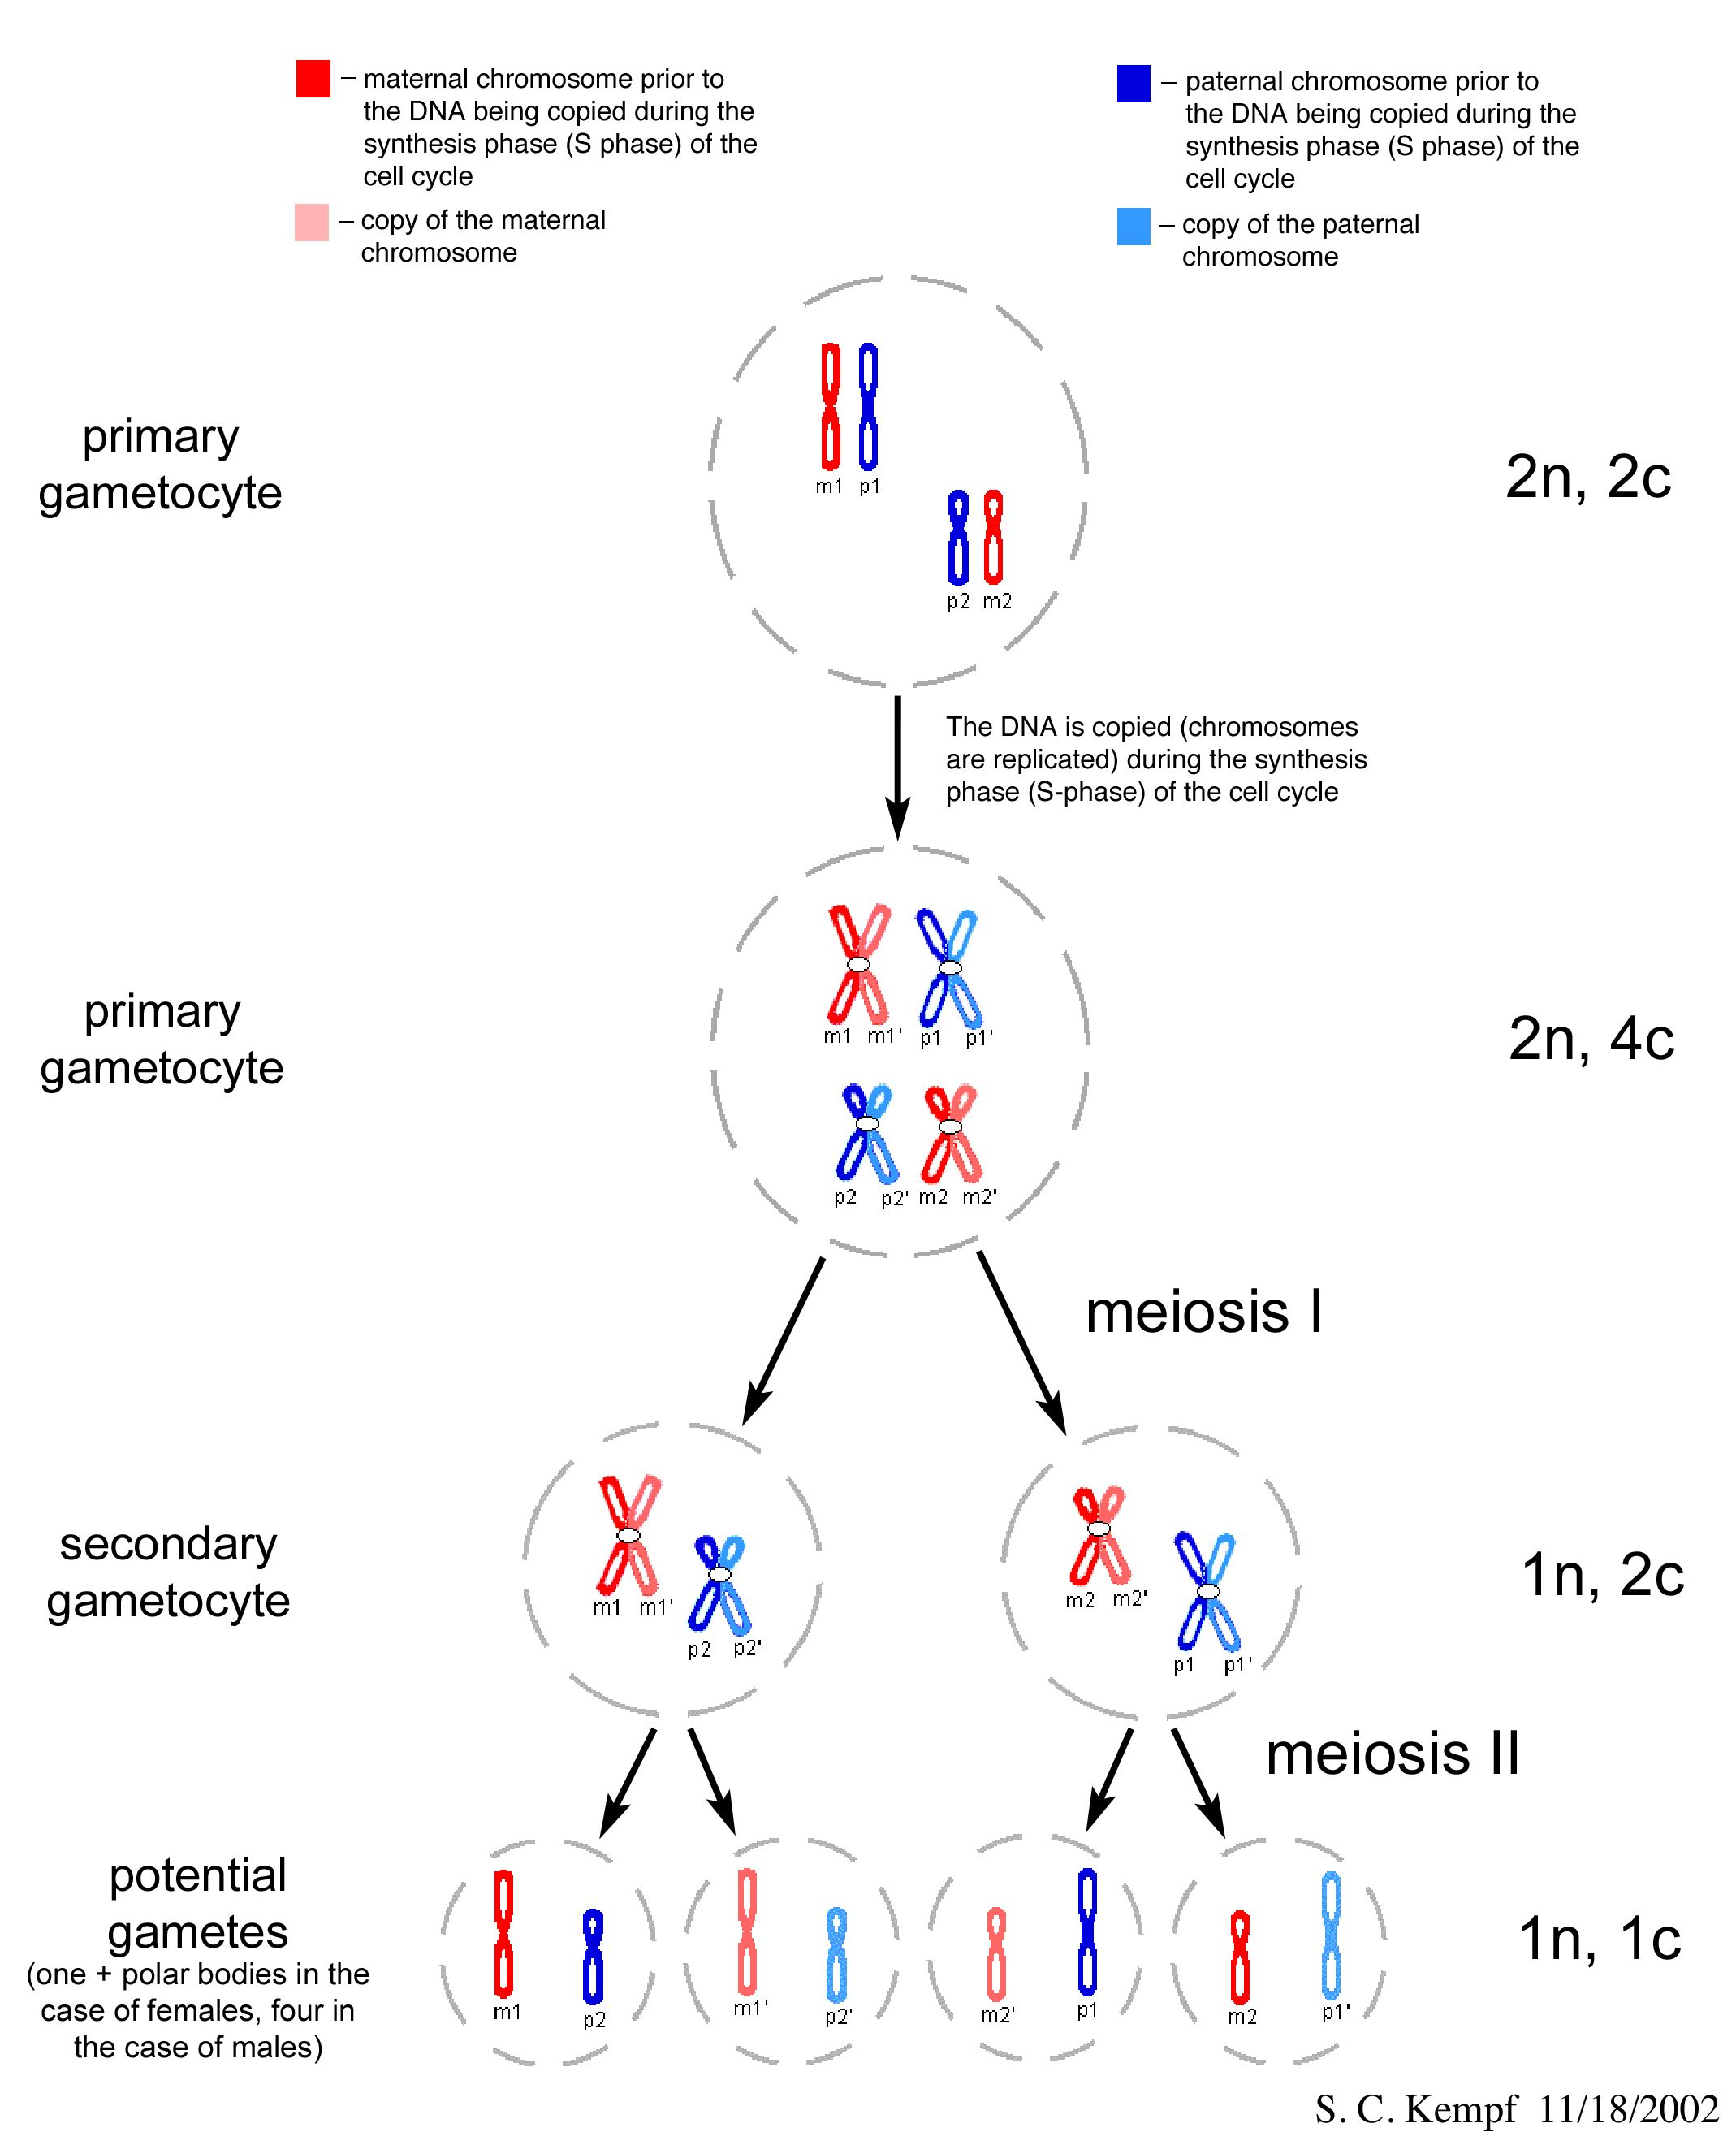 mitosis and meiosis comparison describing differences in ploidy in terms of genetic material n vs chromosome number c level bio 2 or college [ 2138 x 2625 Pixel ]